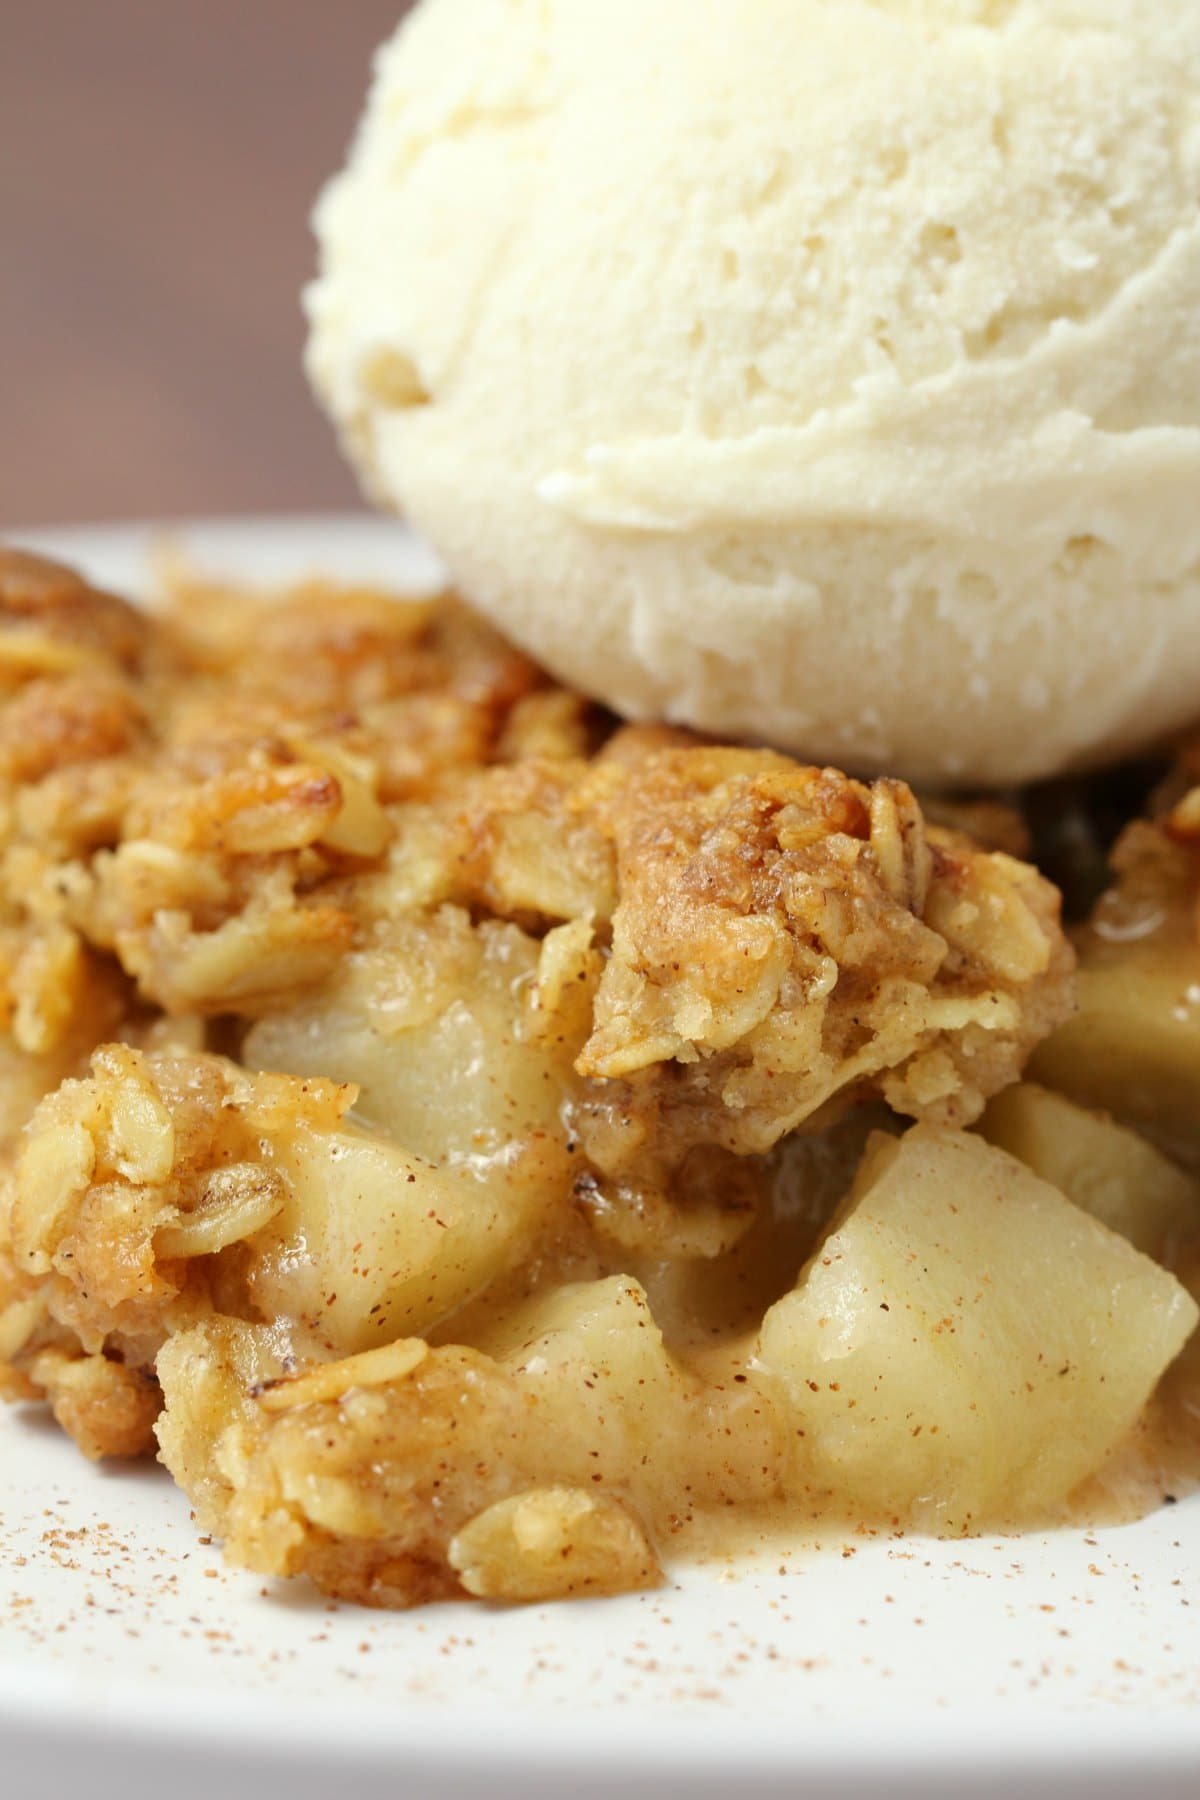 A slice of vegan apple crisp with a scoop of vegan vanilla ice cream on top.